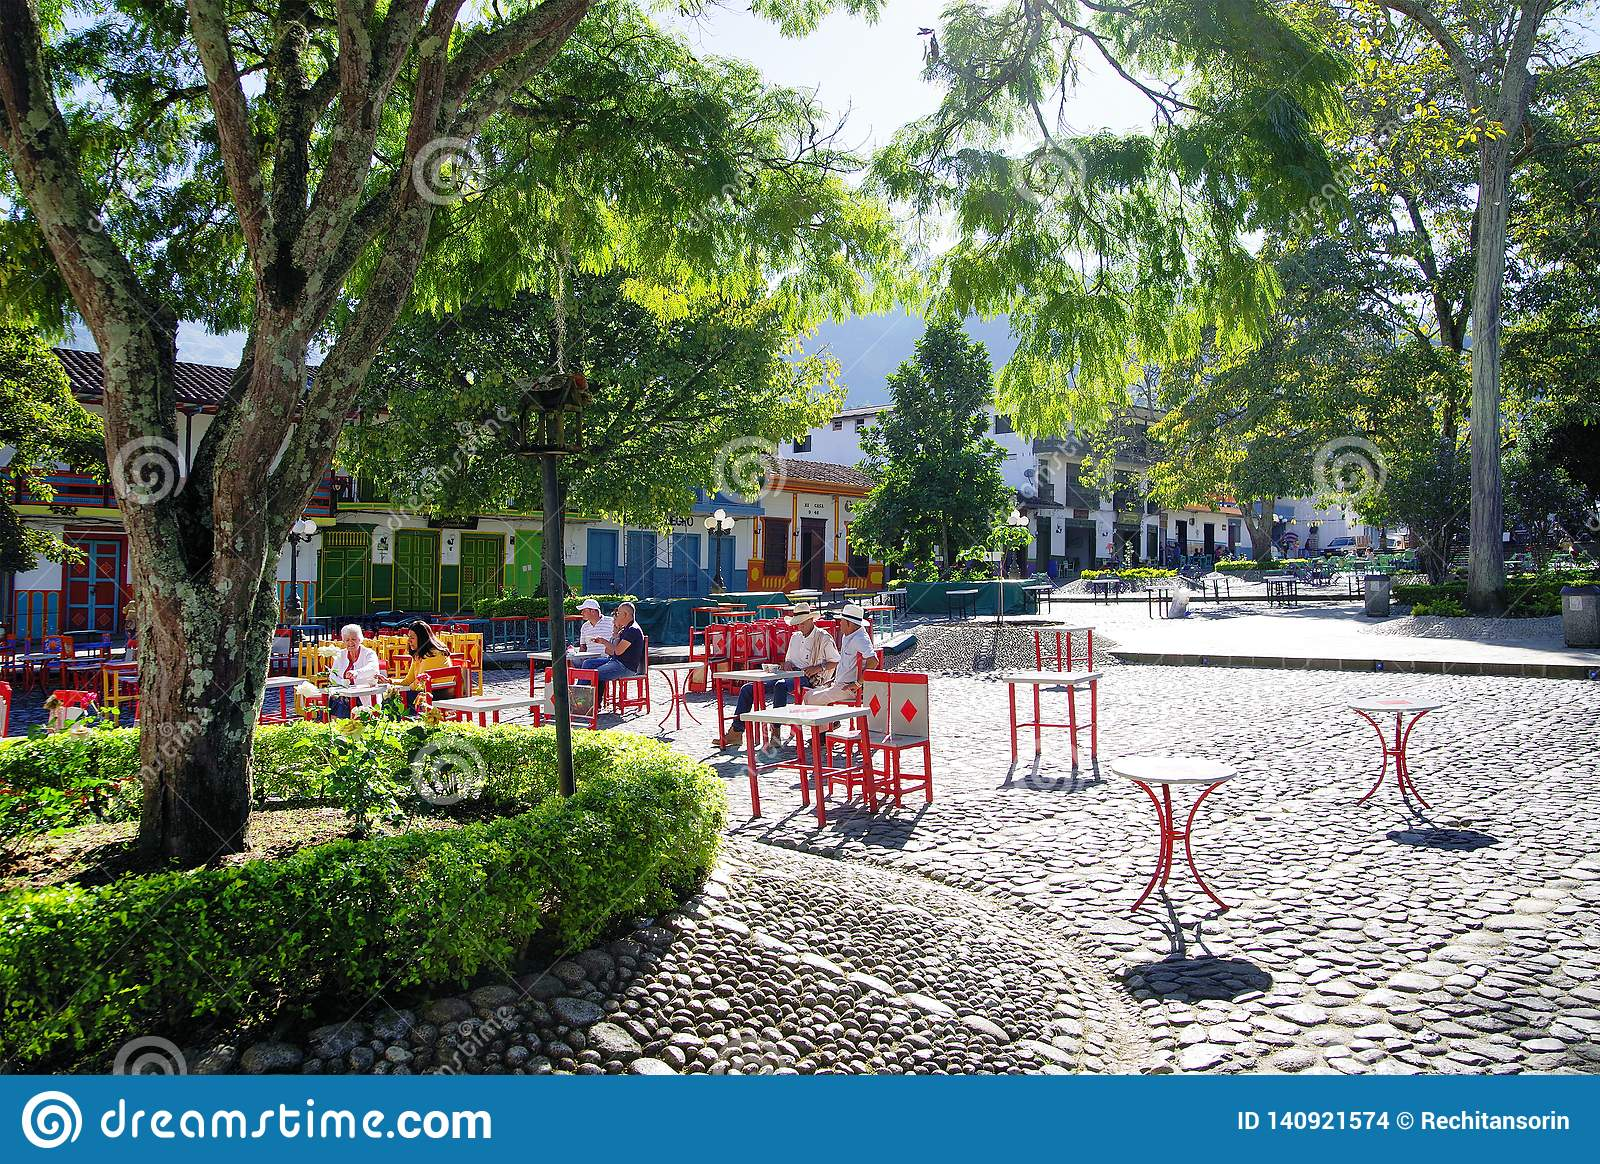 JARDIN, COLOMBIA, AUGUST 14, 2018: The Principal Park In The